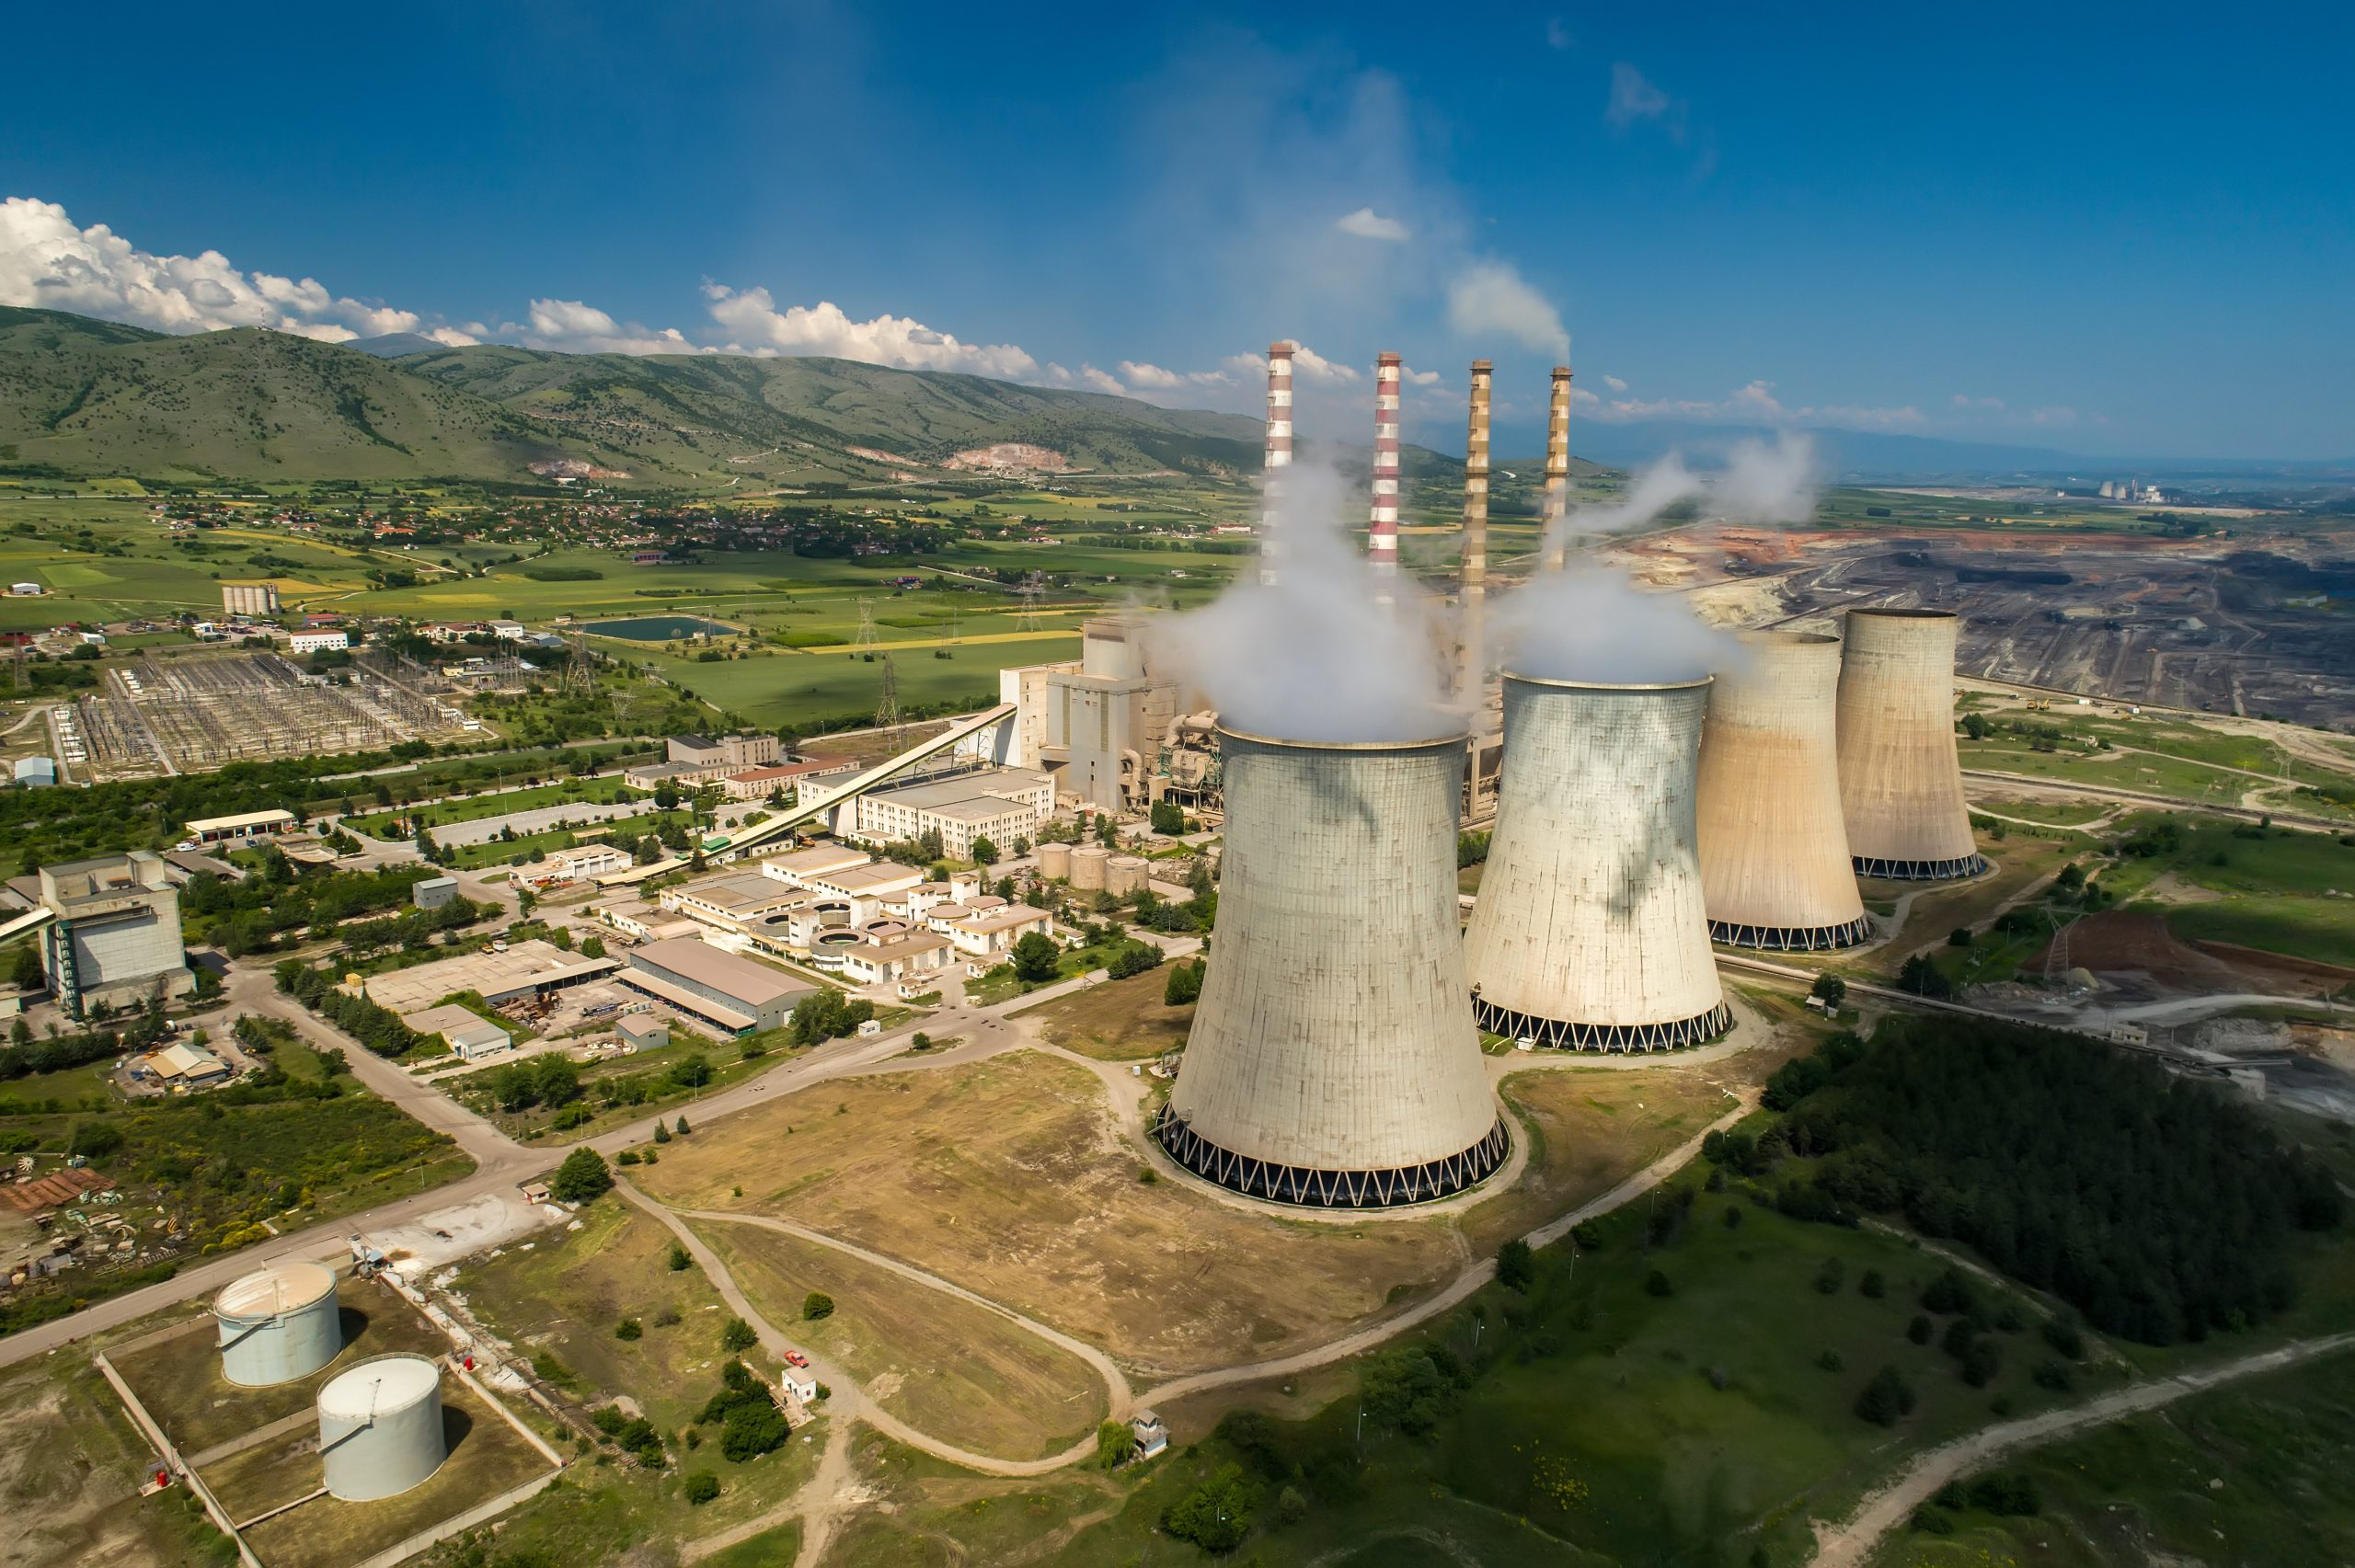 aerial view the plant producing electrical energy